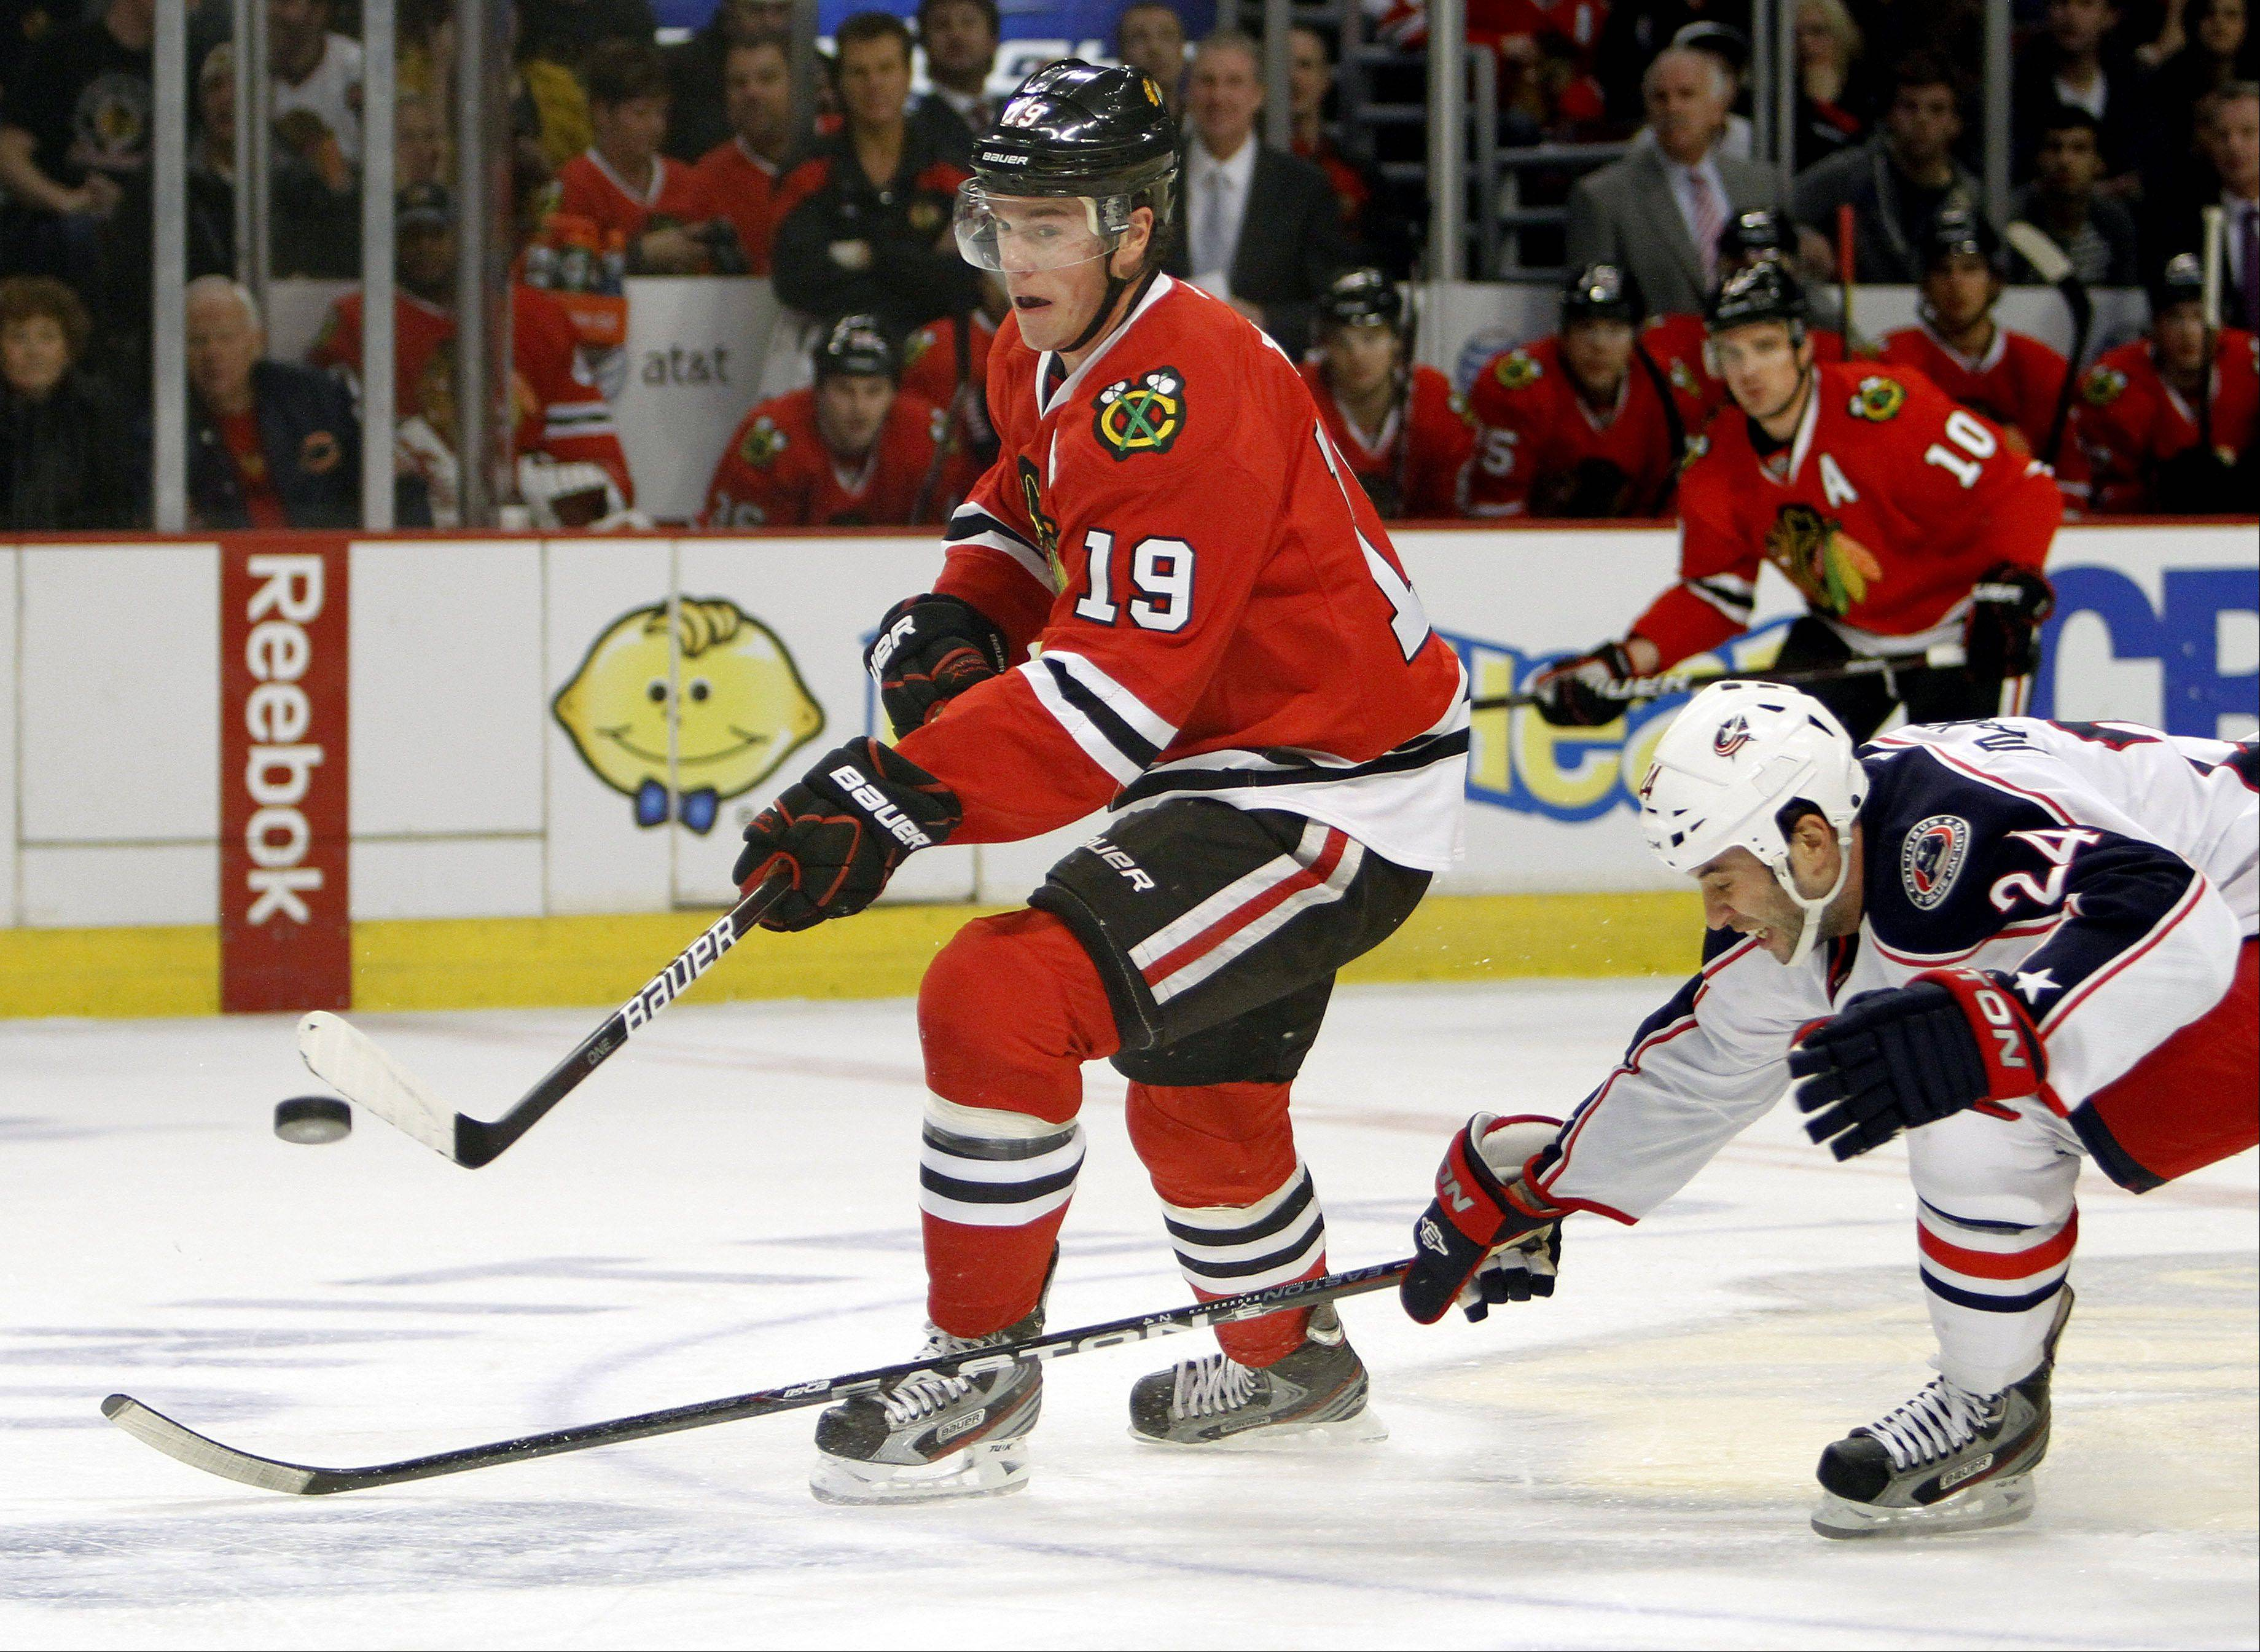 The Chicago Blackhawks and captain Jonathan Toews will open the 2012-13 season against the Columbus Blue Jackets at the United Center on Oct. 13.